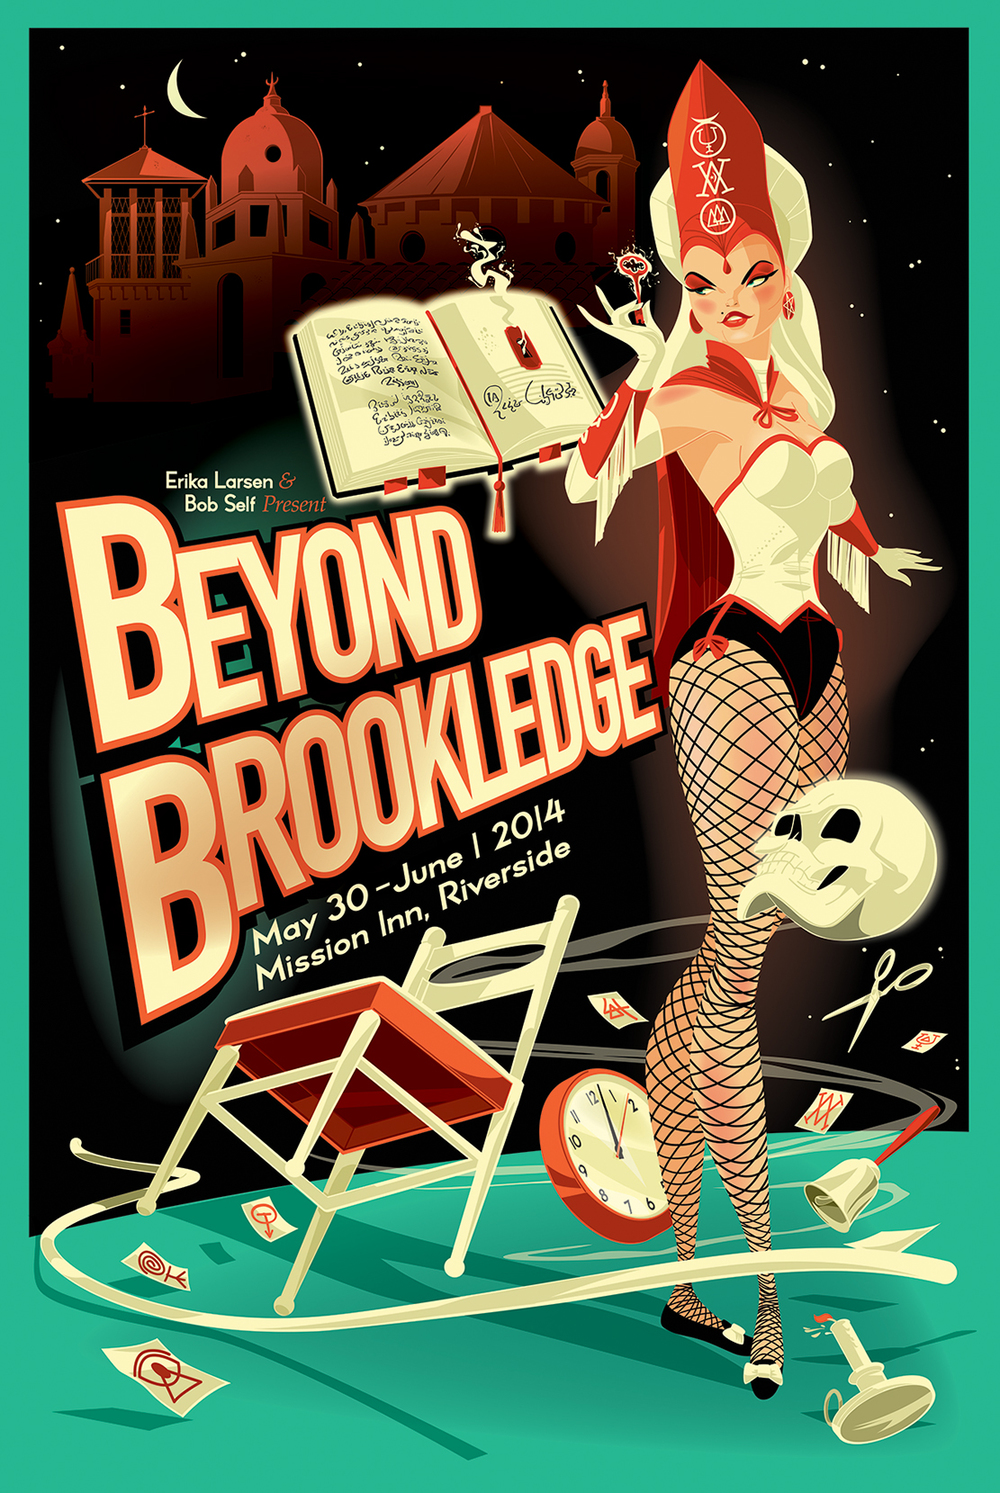 Beyond Brookledge